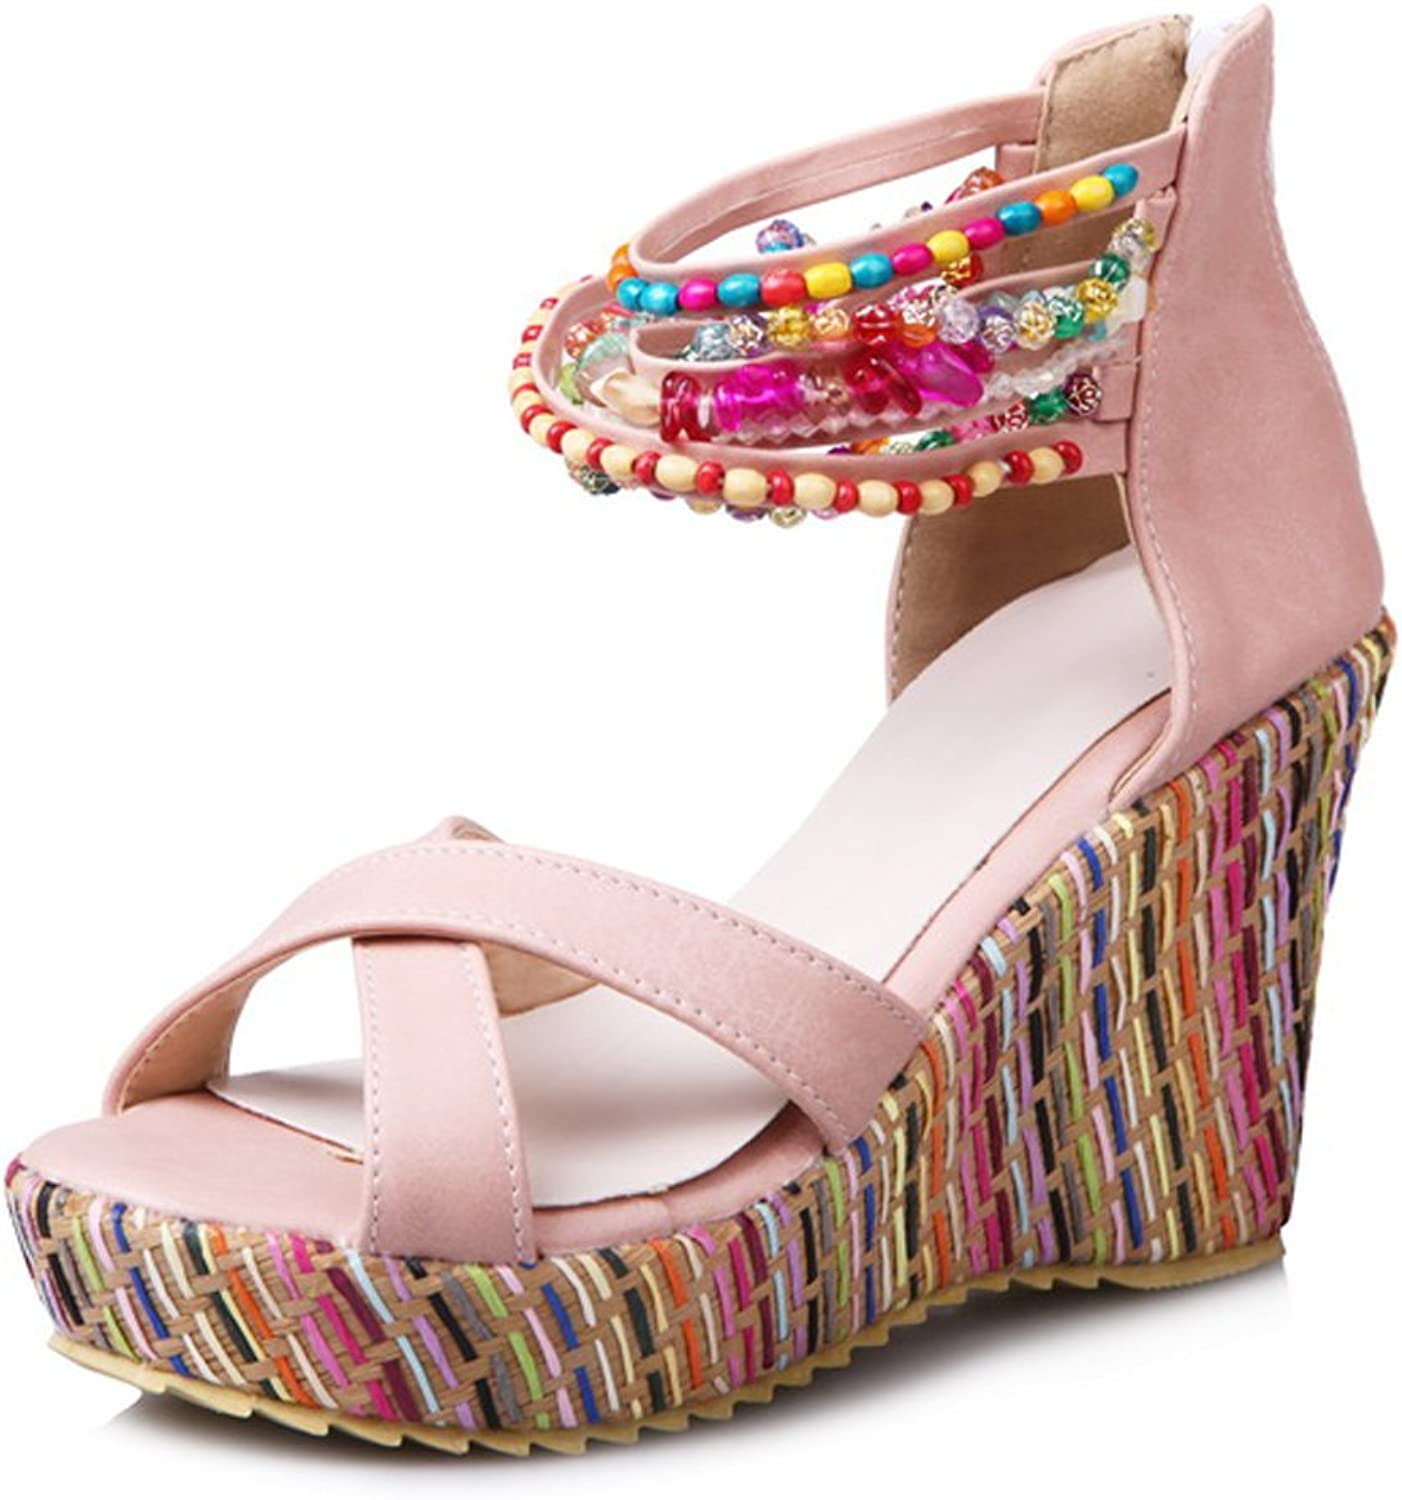 DoraTasia Bohemia colorful Beading String Cross Belts Platform High Wedges Women Sandals